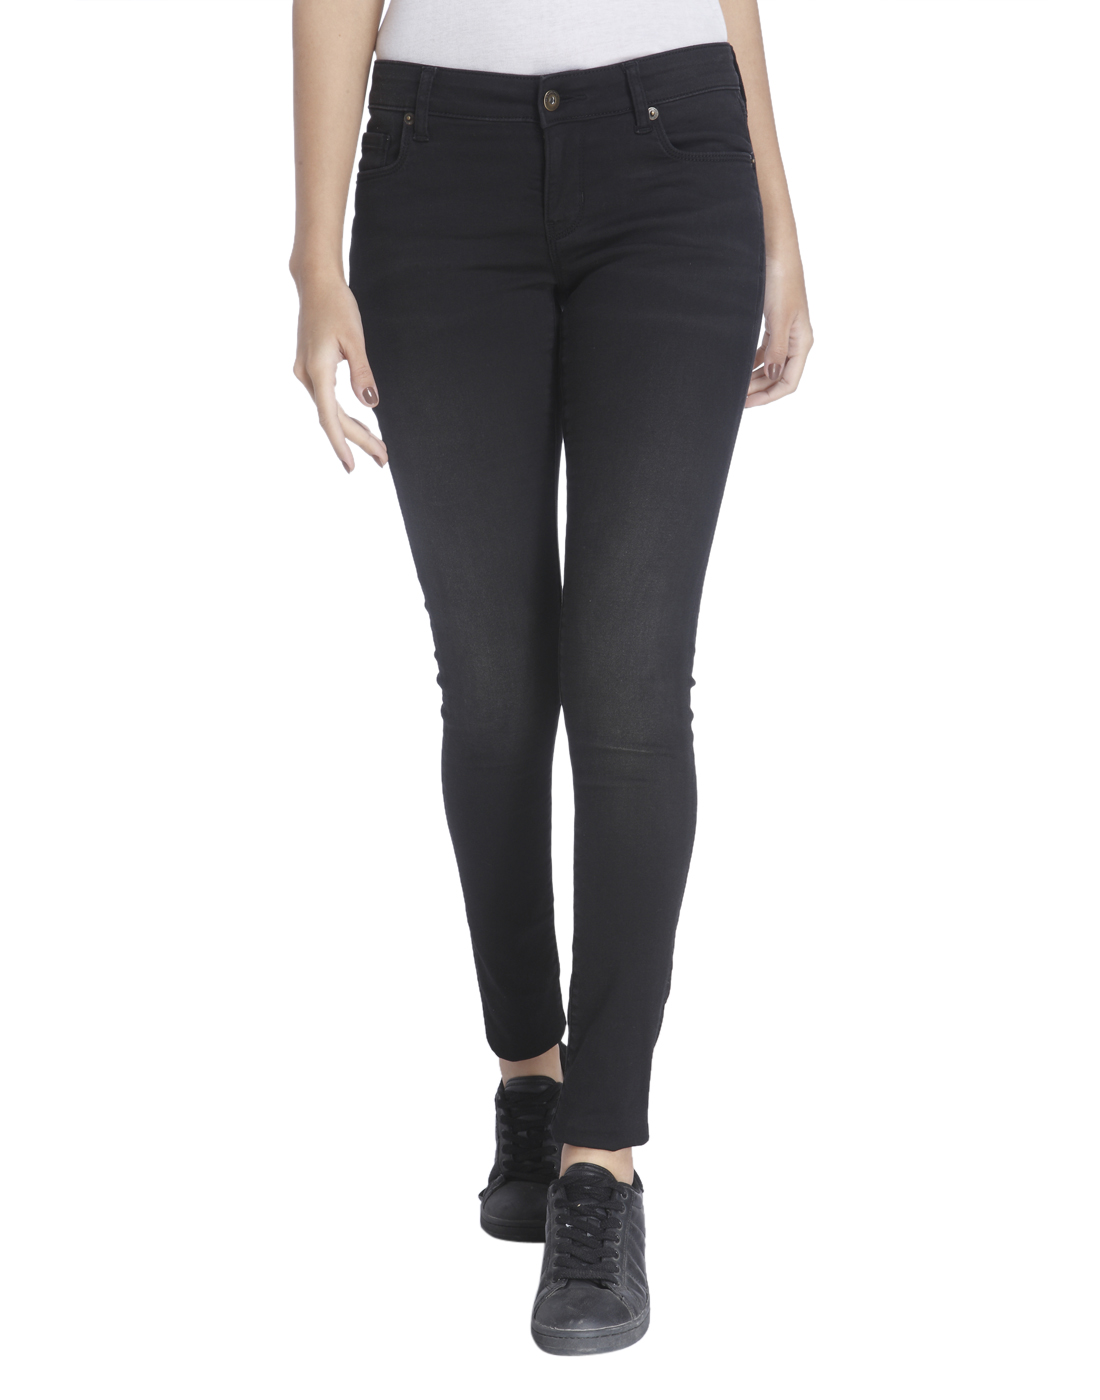 Vero Moda Women Black Jeans